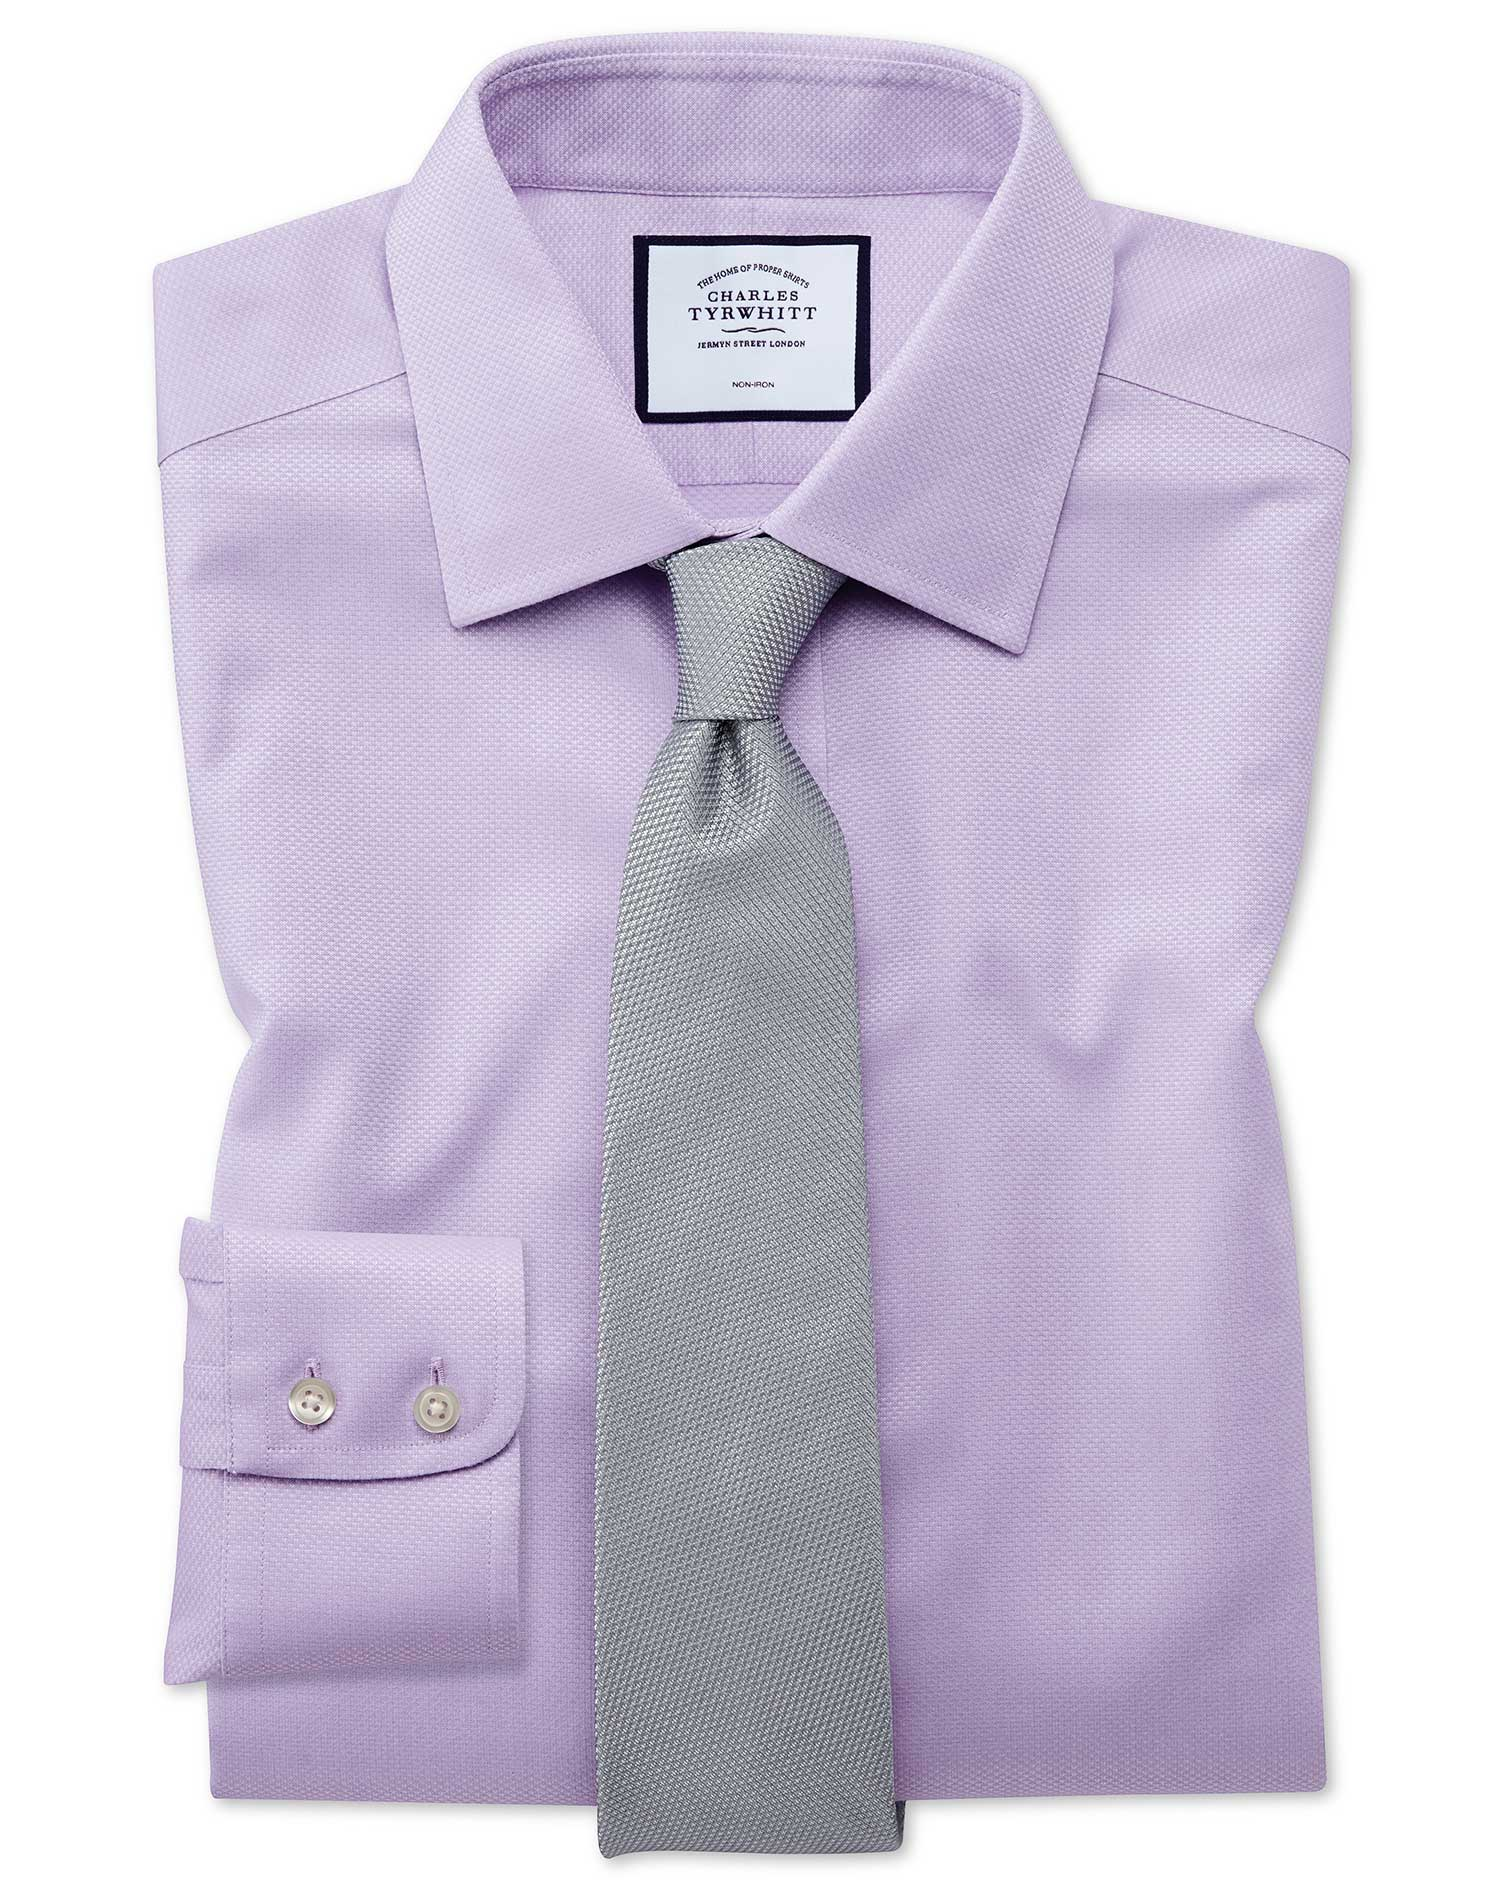 Slim Fit Non-Iron Lilac Triangle Weave Cotton Formal Shirt Double Cuff Size 17/37 by Charles Tyrwhit